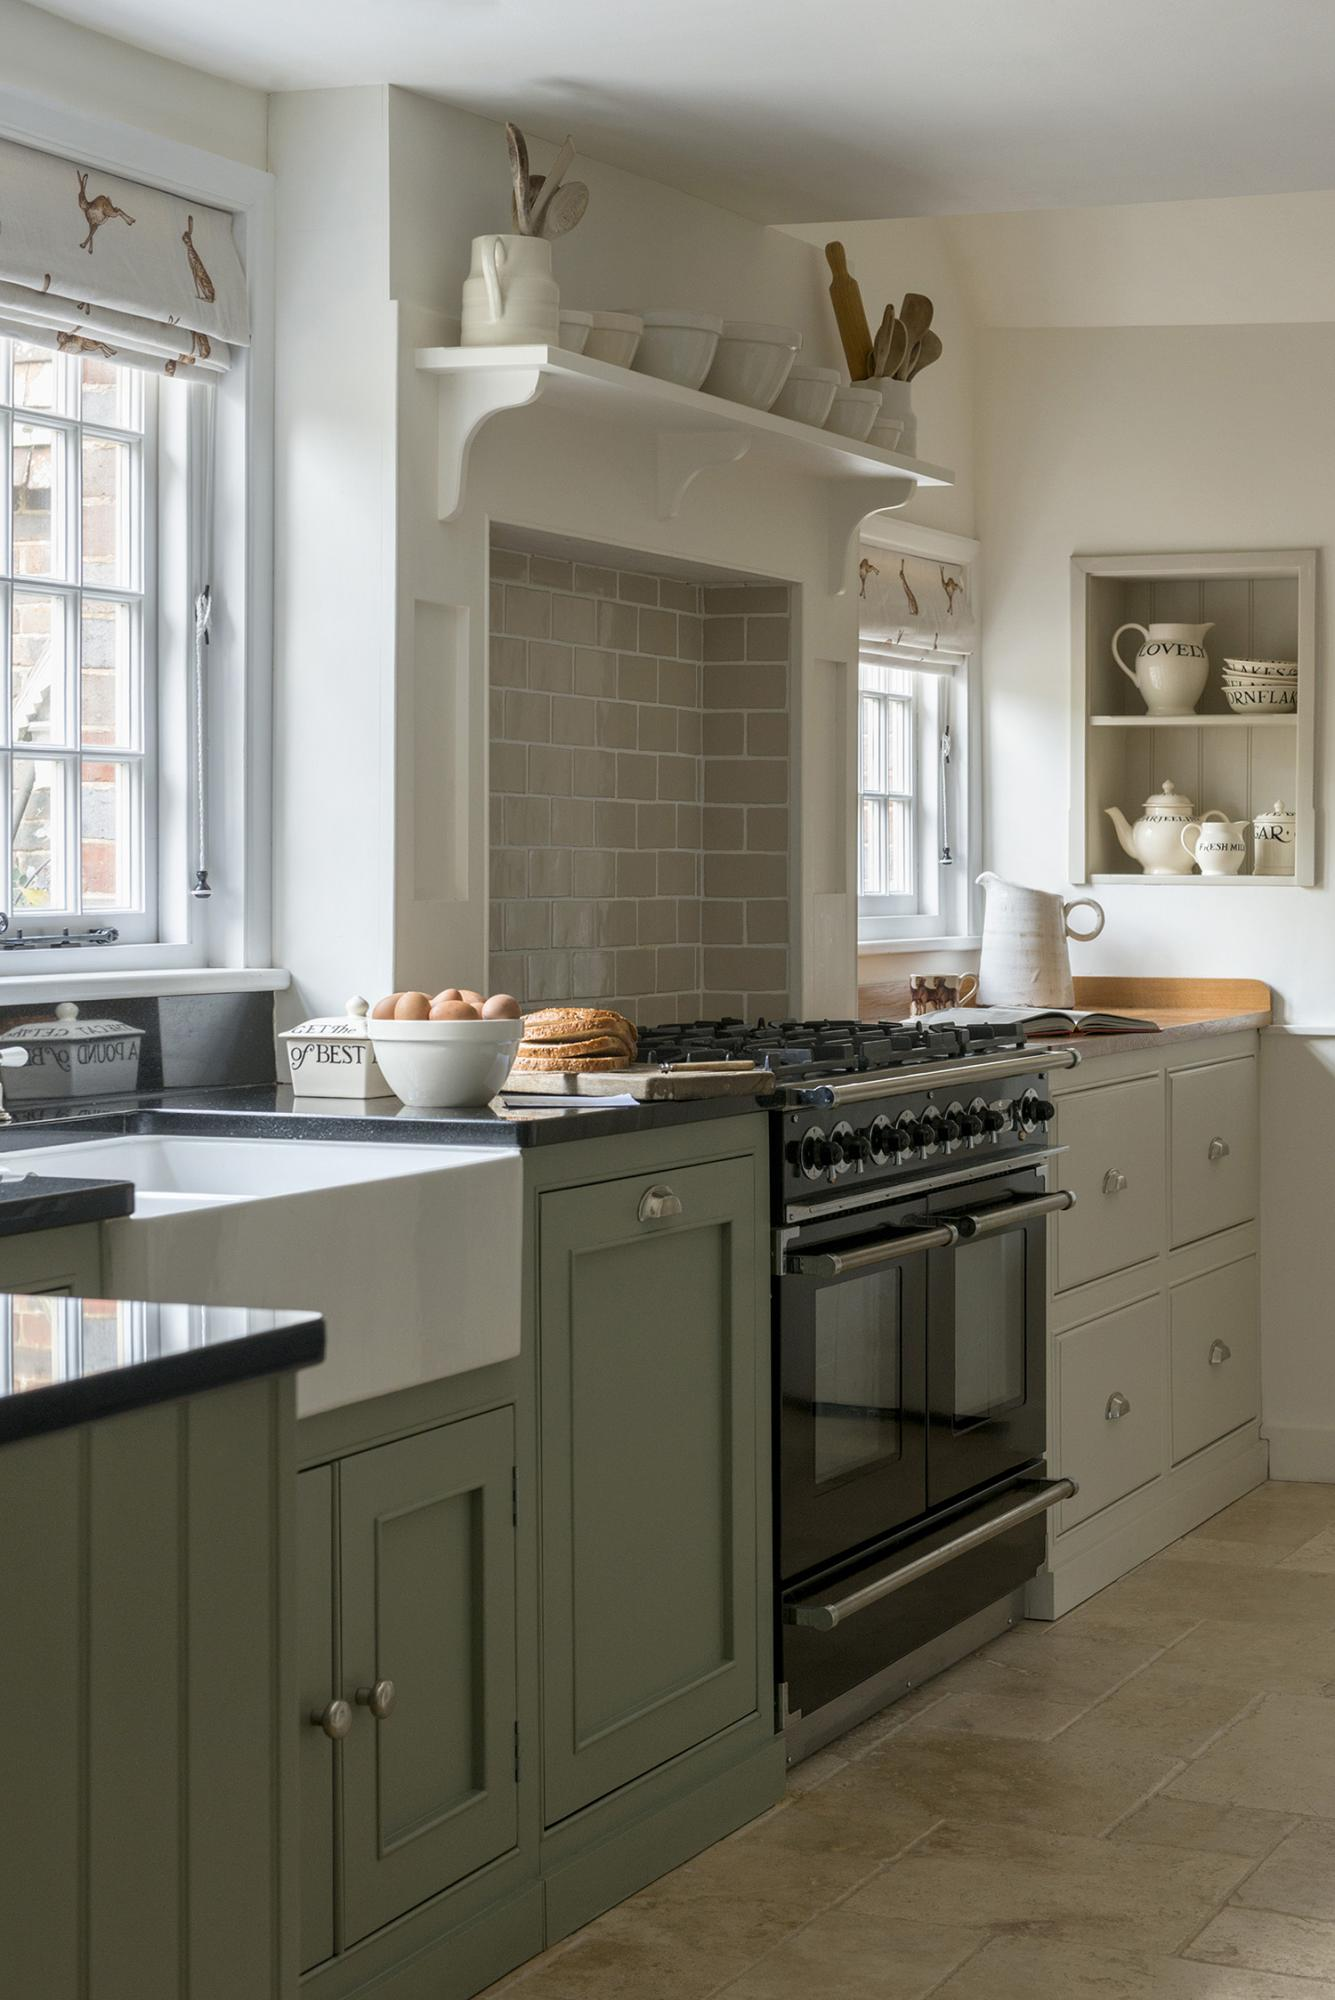 Farmhouse country kitchens design sussex surrey for How to style a kitchen